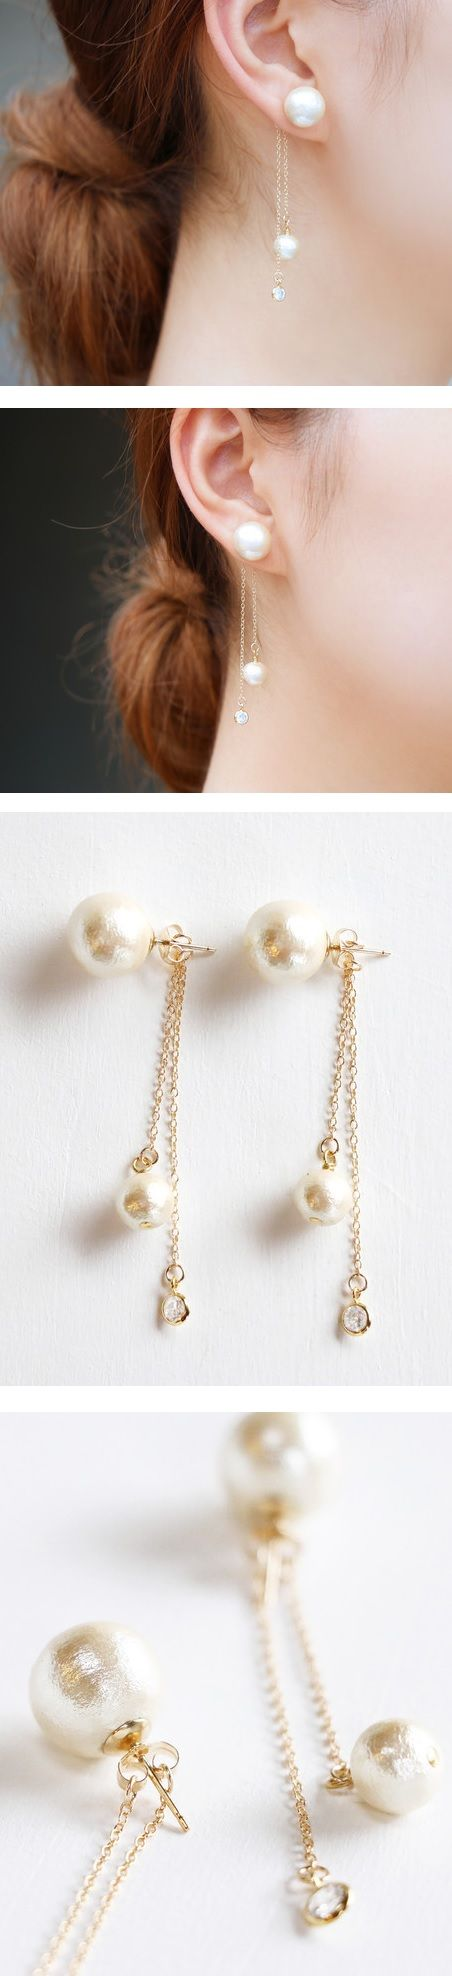 Idea for pretty pearl ear-rings - love the dangling chain tails! :D